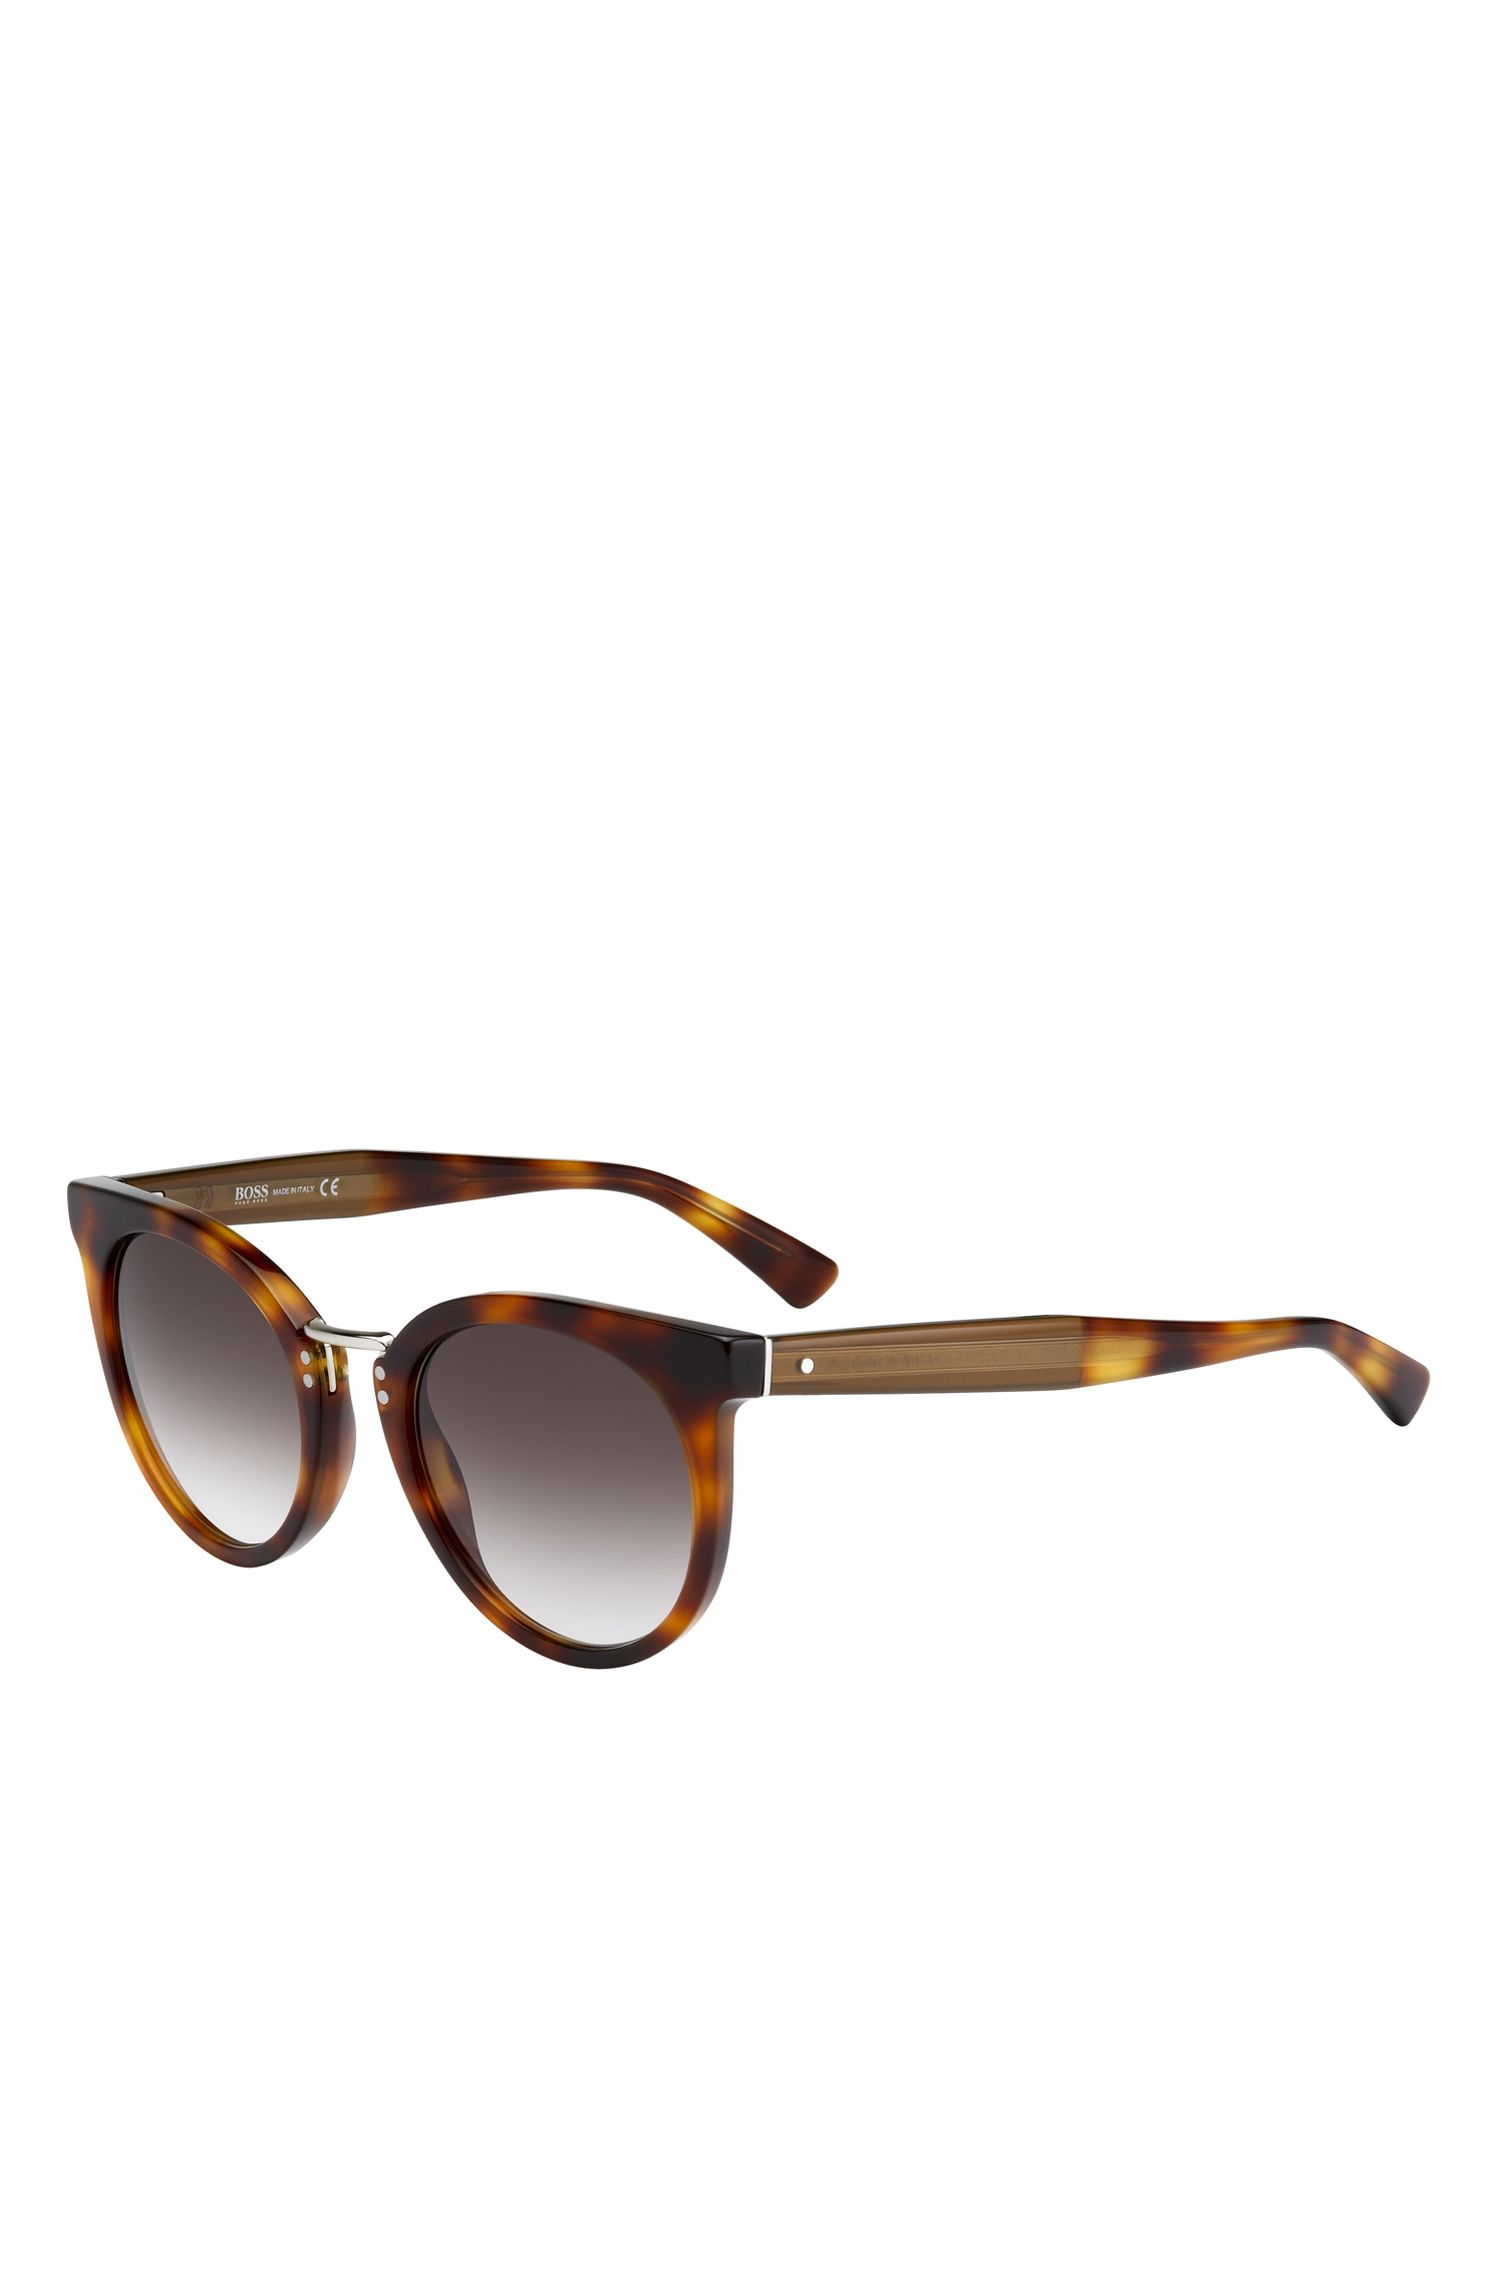 'BOSS 0793S' | Black Lens Rounded Cateye Havana Sunglasses